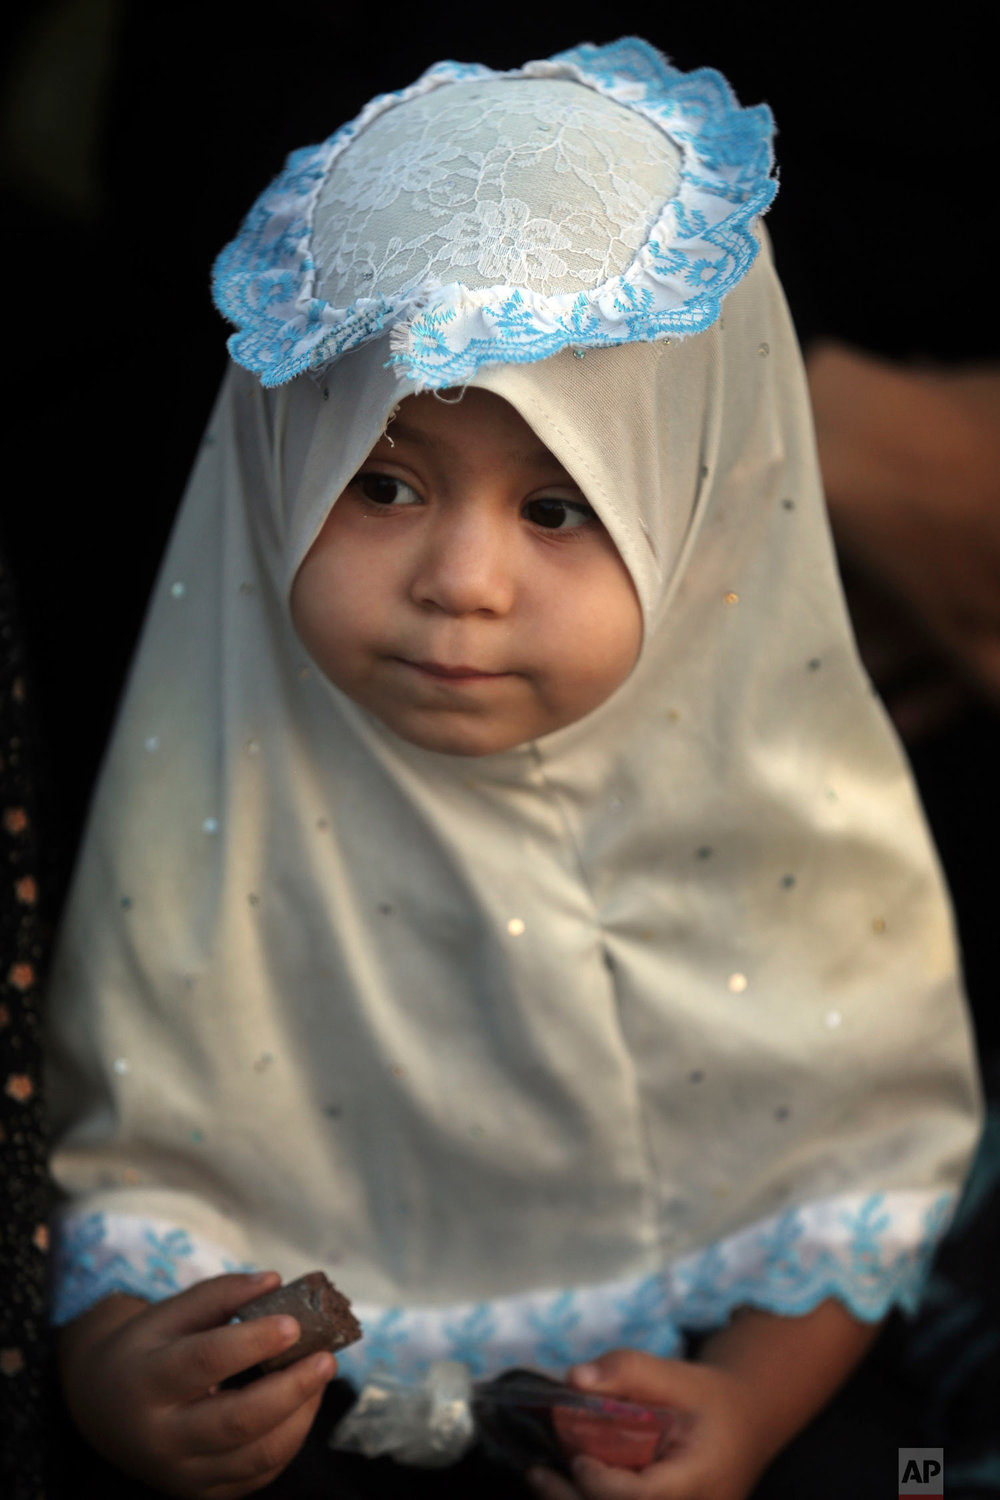 A girl joins a prayer to mark the first day of Eid al-Adha in Gaza City, Tuesday, Aug. 21, 2018. During the Eid al-Adha, or Feast of Sacrifice, Muslims slaughter sheep or cattle to distribute portions of the meat to the poor. (AP Photo/Khalil Hamra)